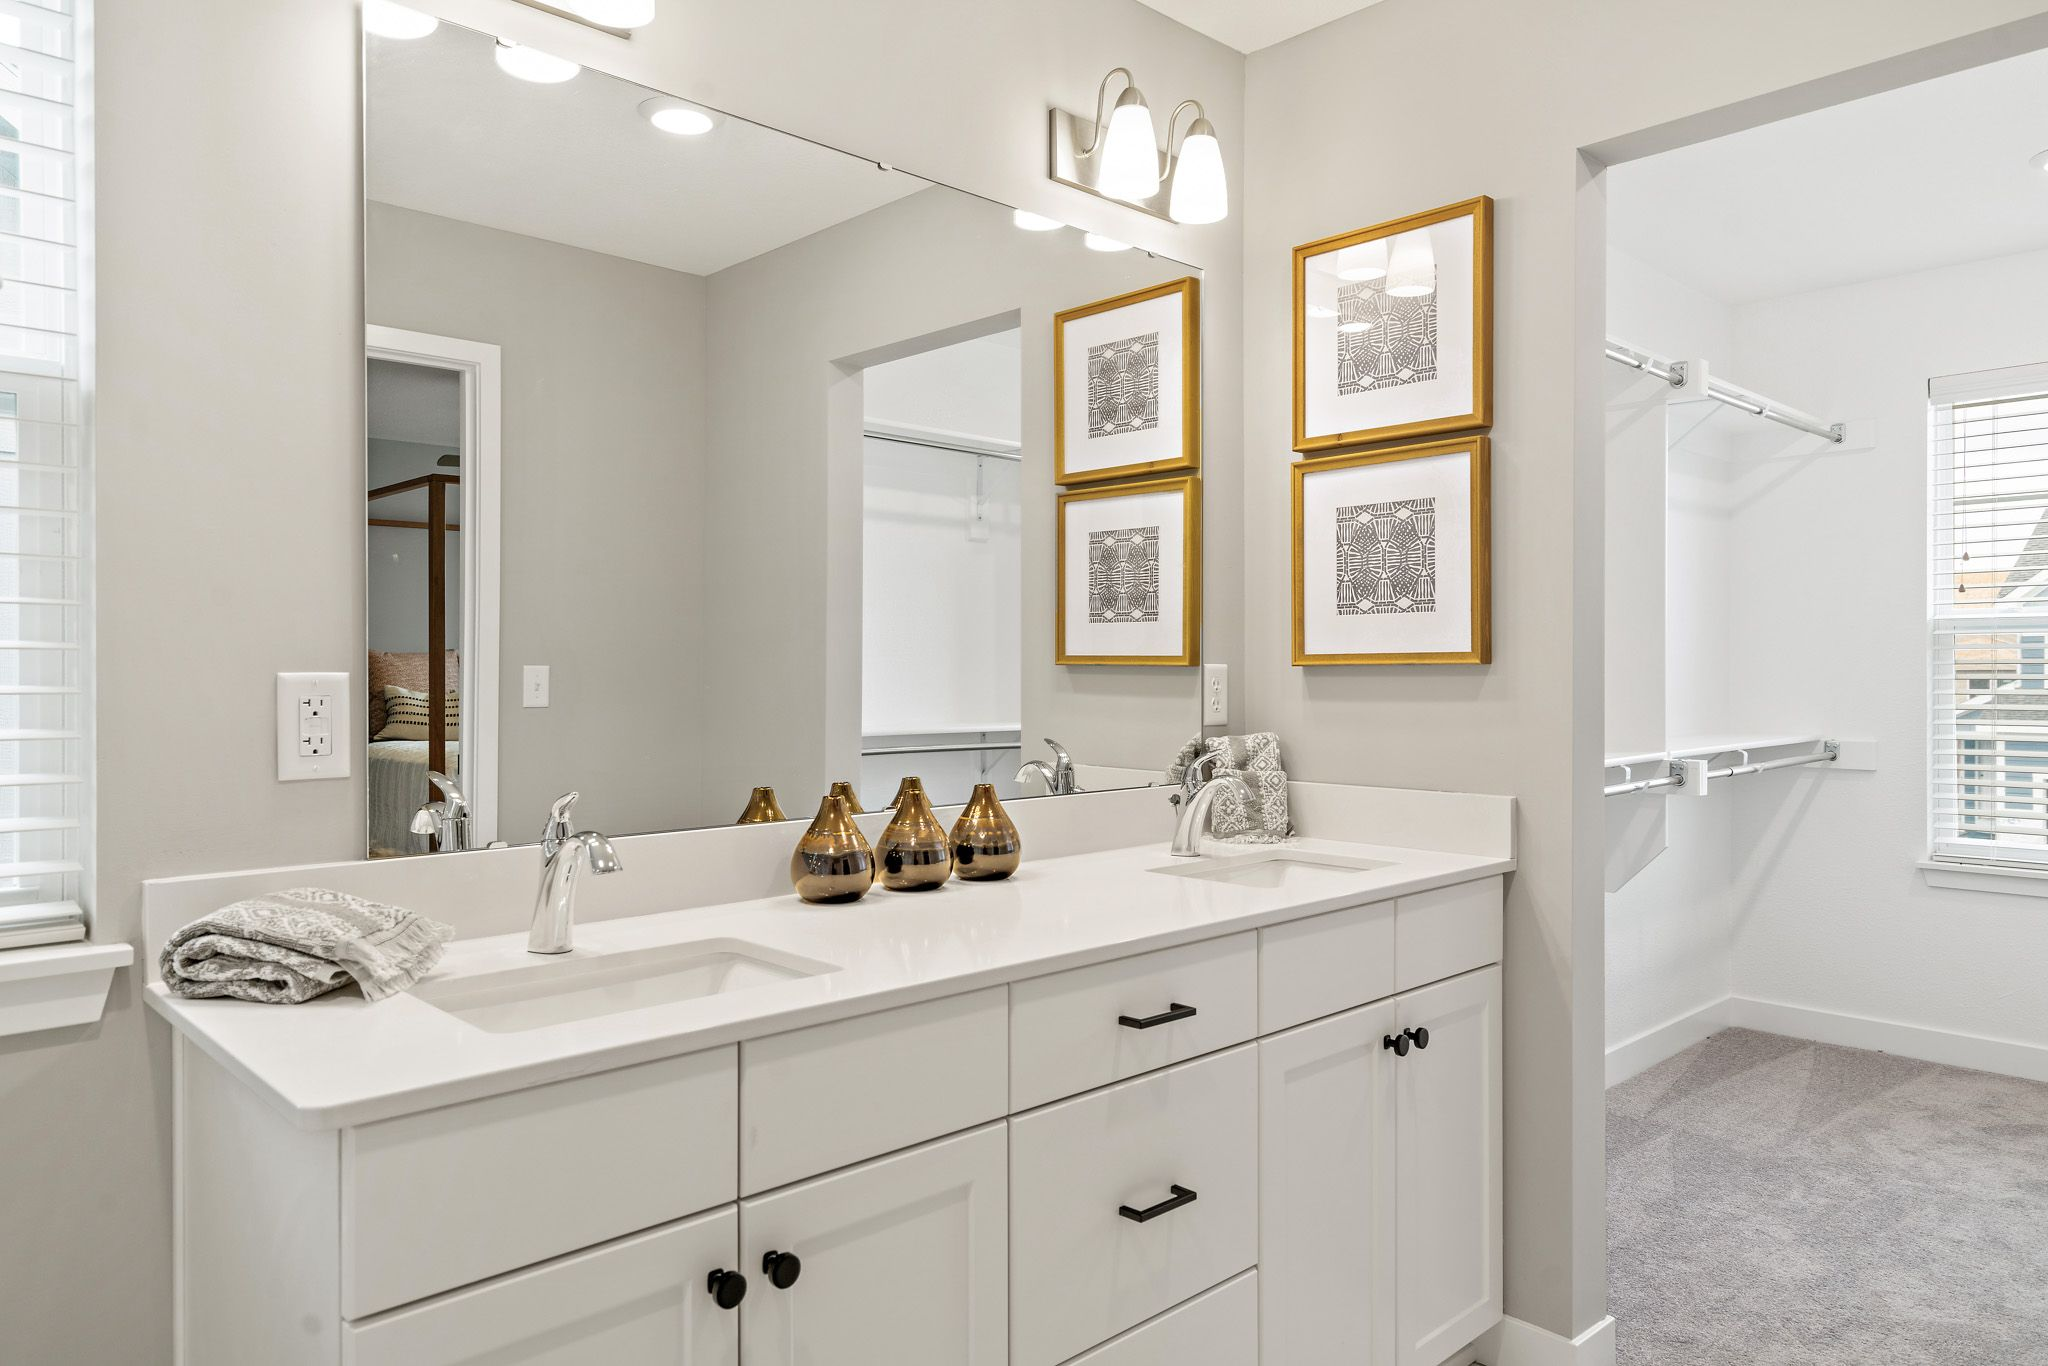 Bathroom featured in the honeydew By clover & hive in Kansas City, MO